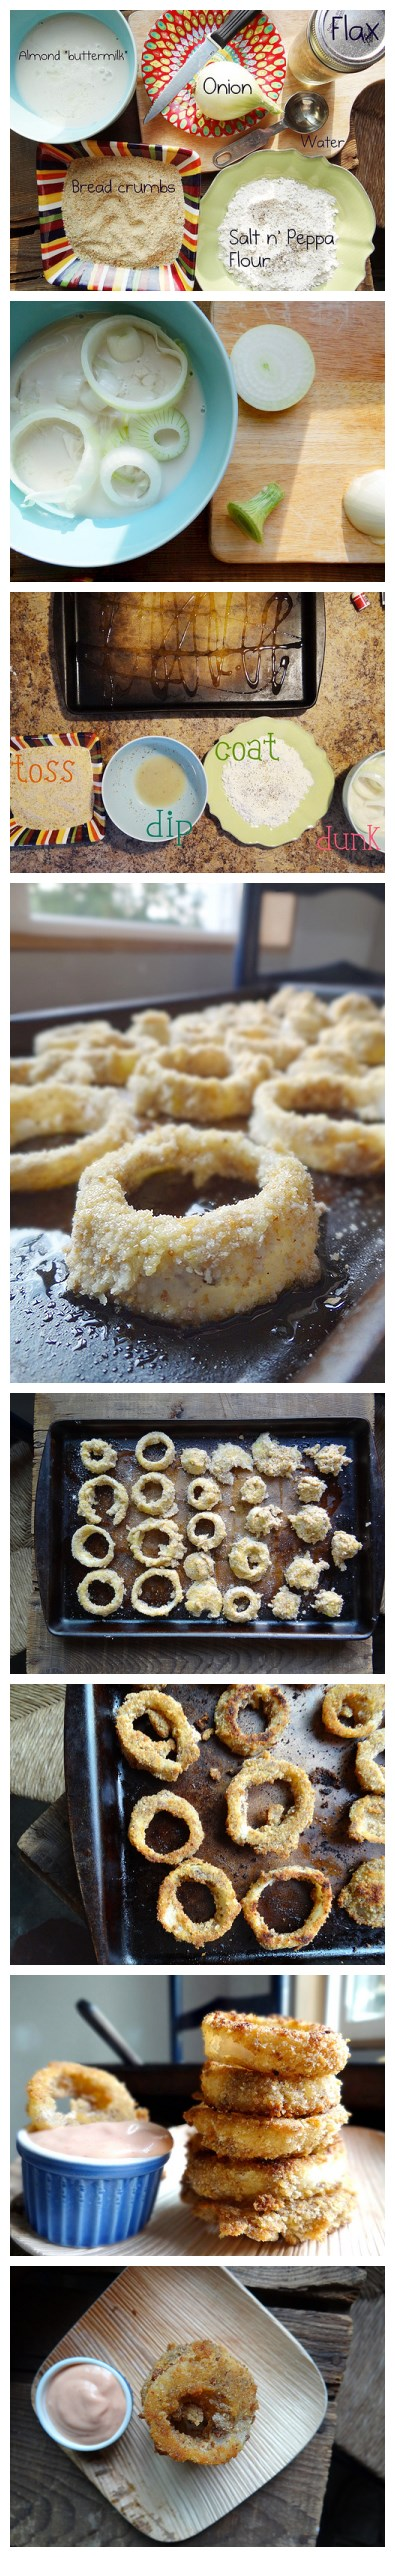 Cooking classes - How to bake health onion rings step by step DIY tutorial instructions